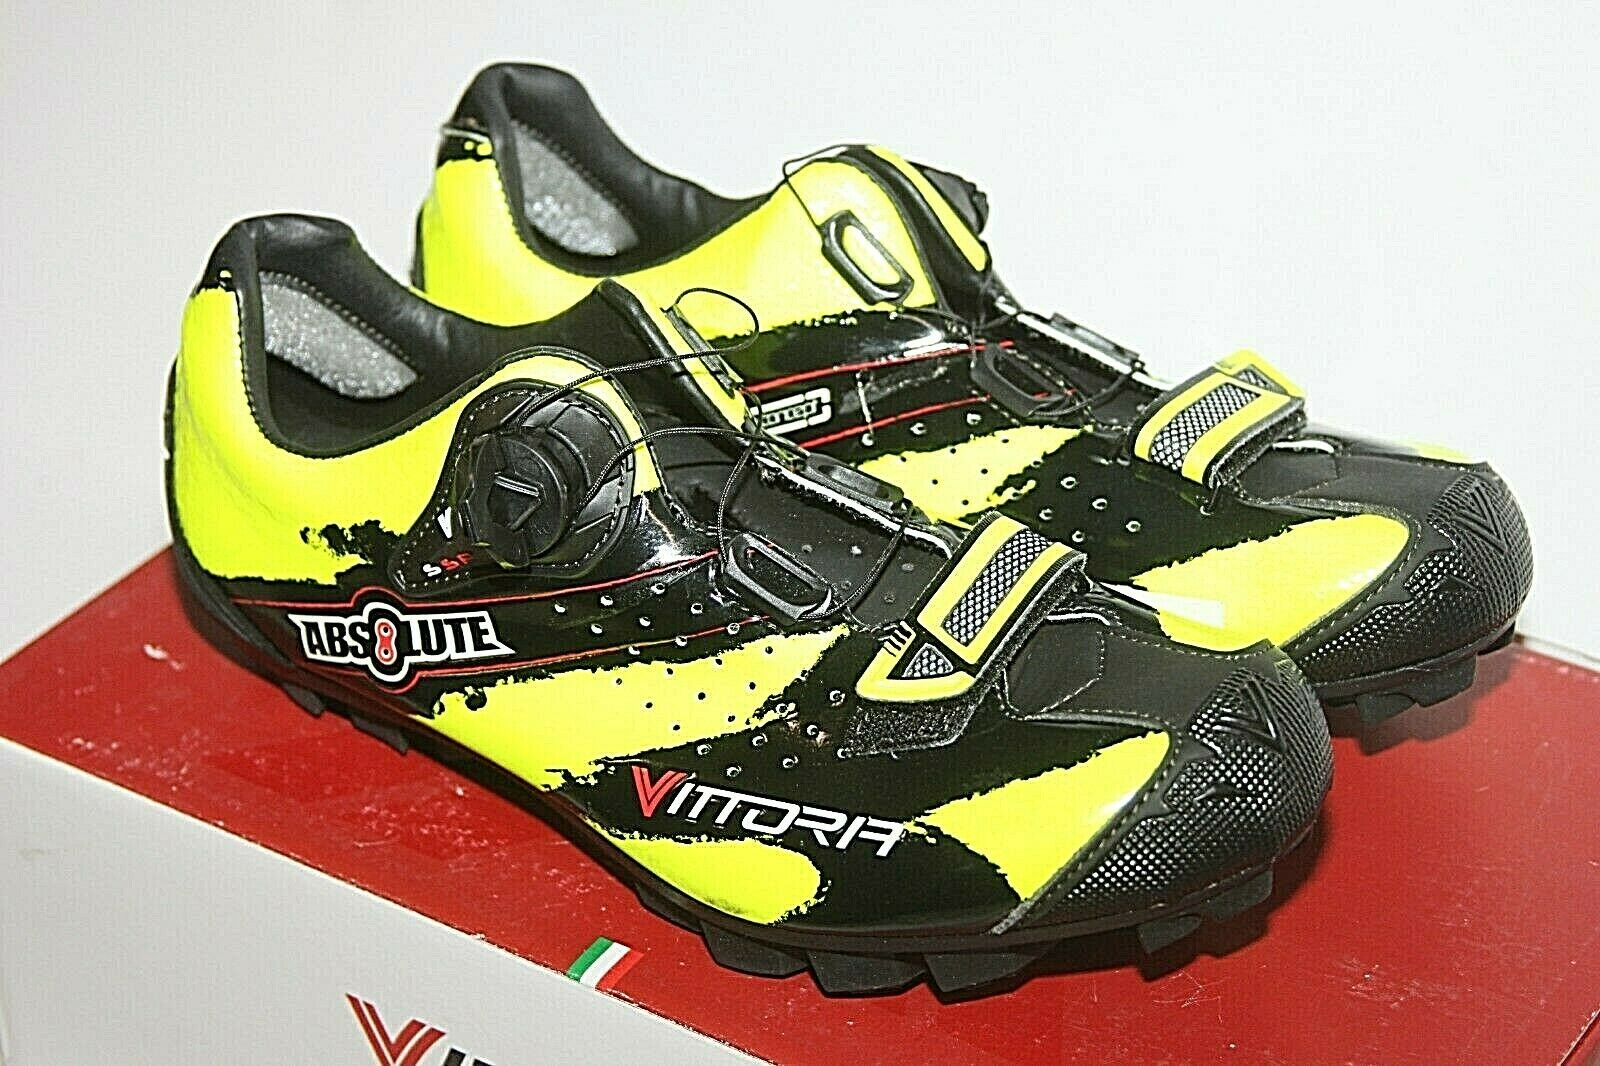 Men's Vittoria Absolute  MTB shoes Yellow Cycling shoes  Sz 40.5 NIB BOA  wholesale price and reliable quality